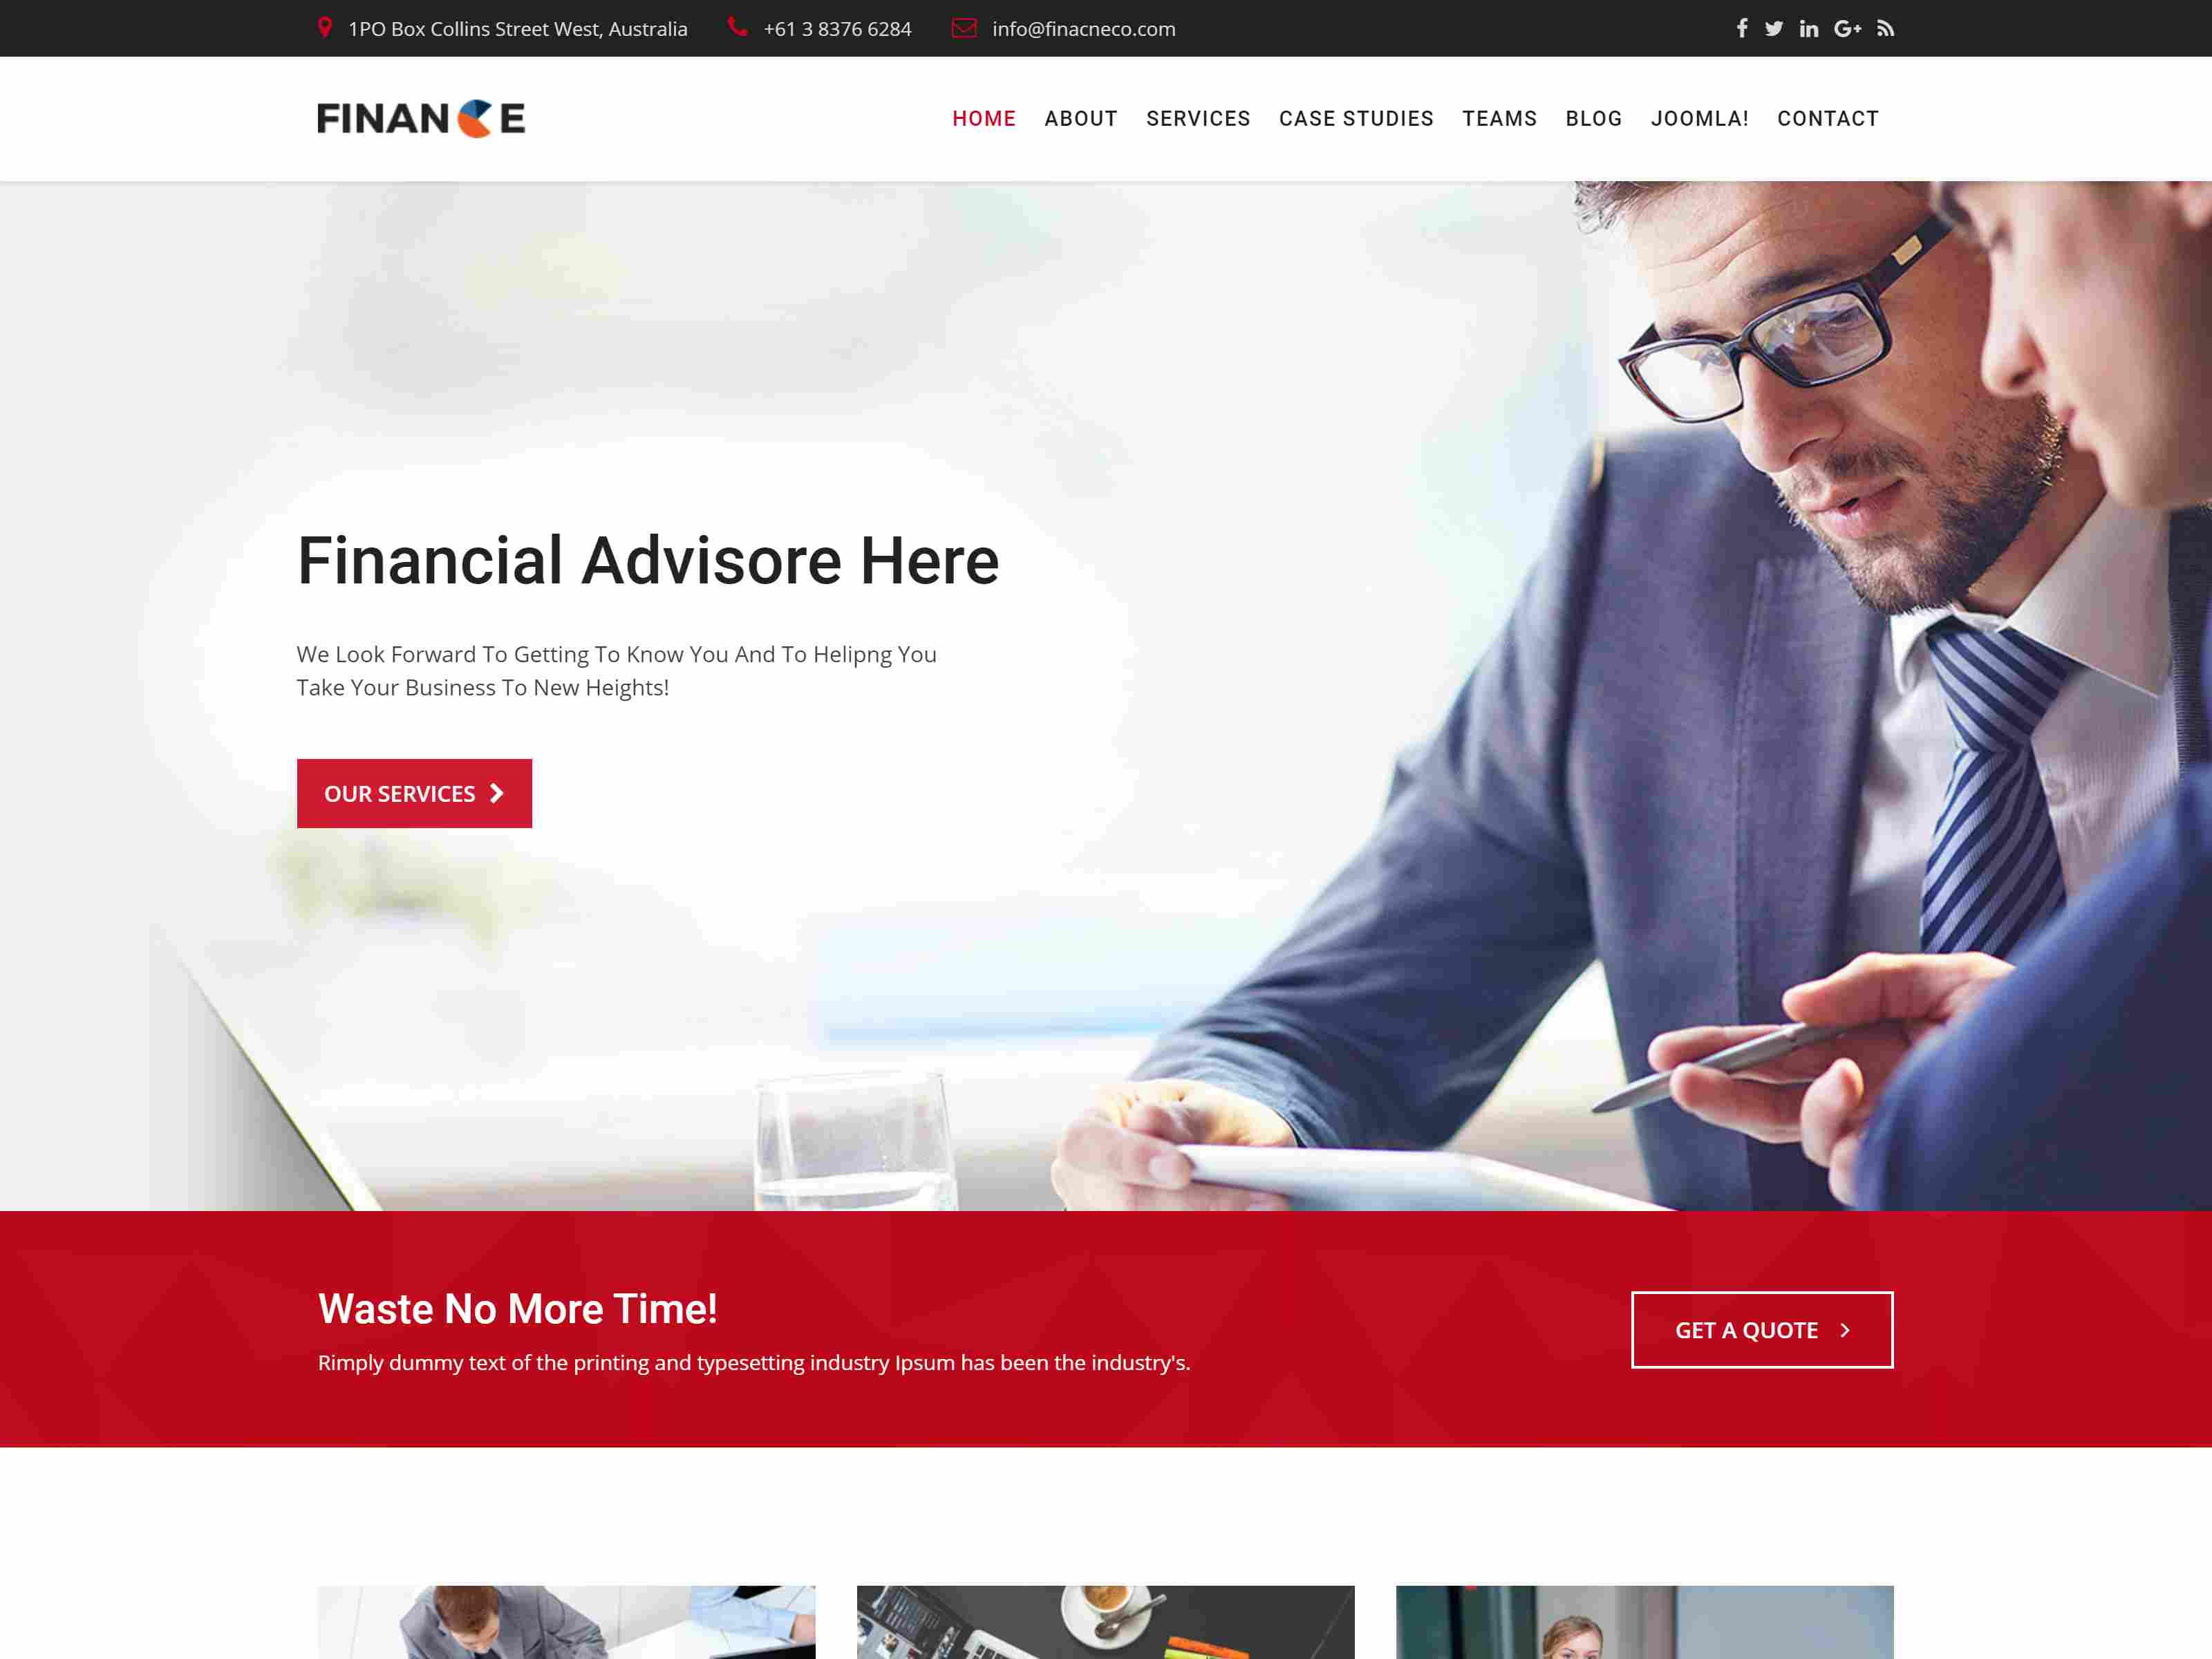 Finance - Business & Consulting Joomla Template